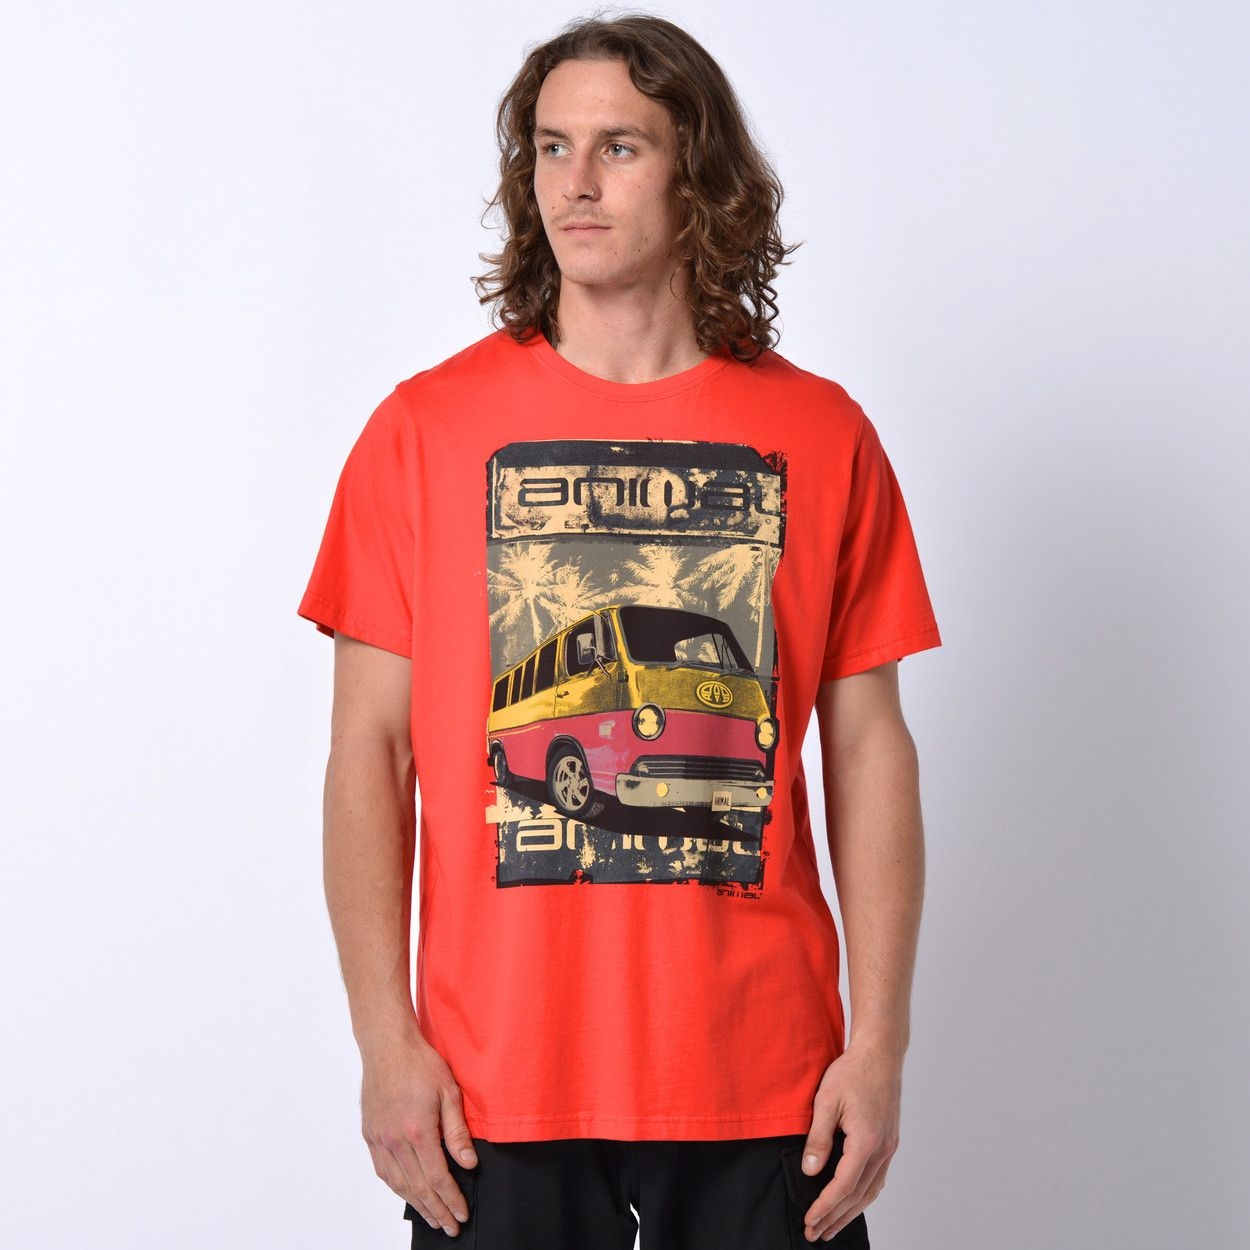 Lovern t-shirt